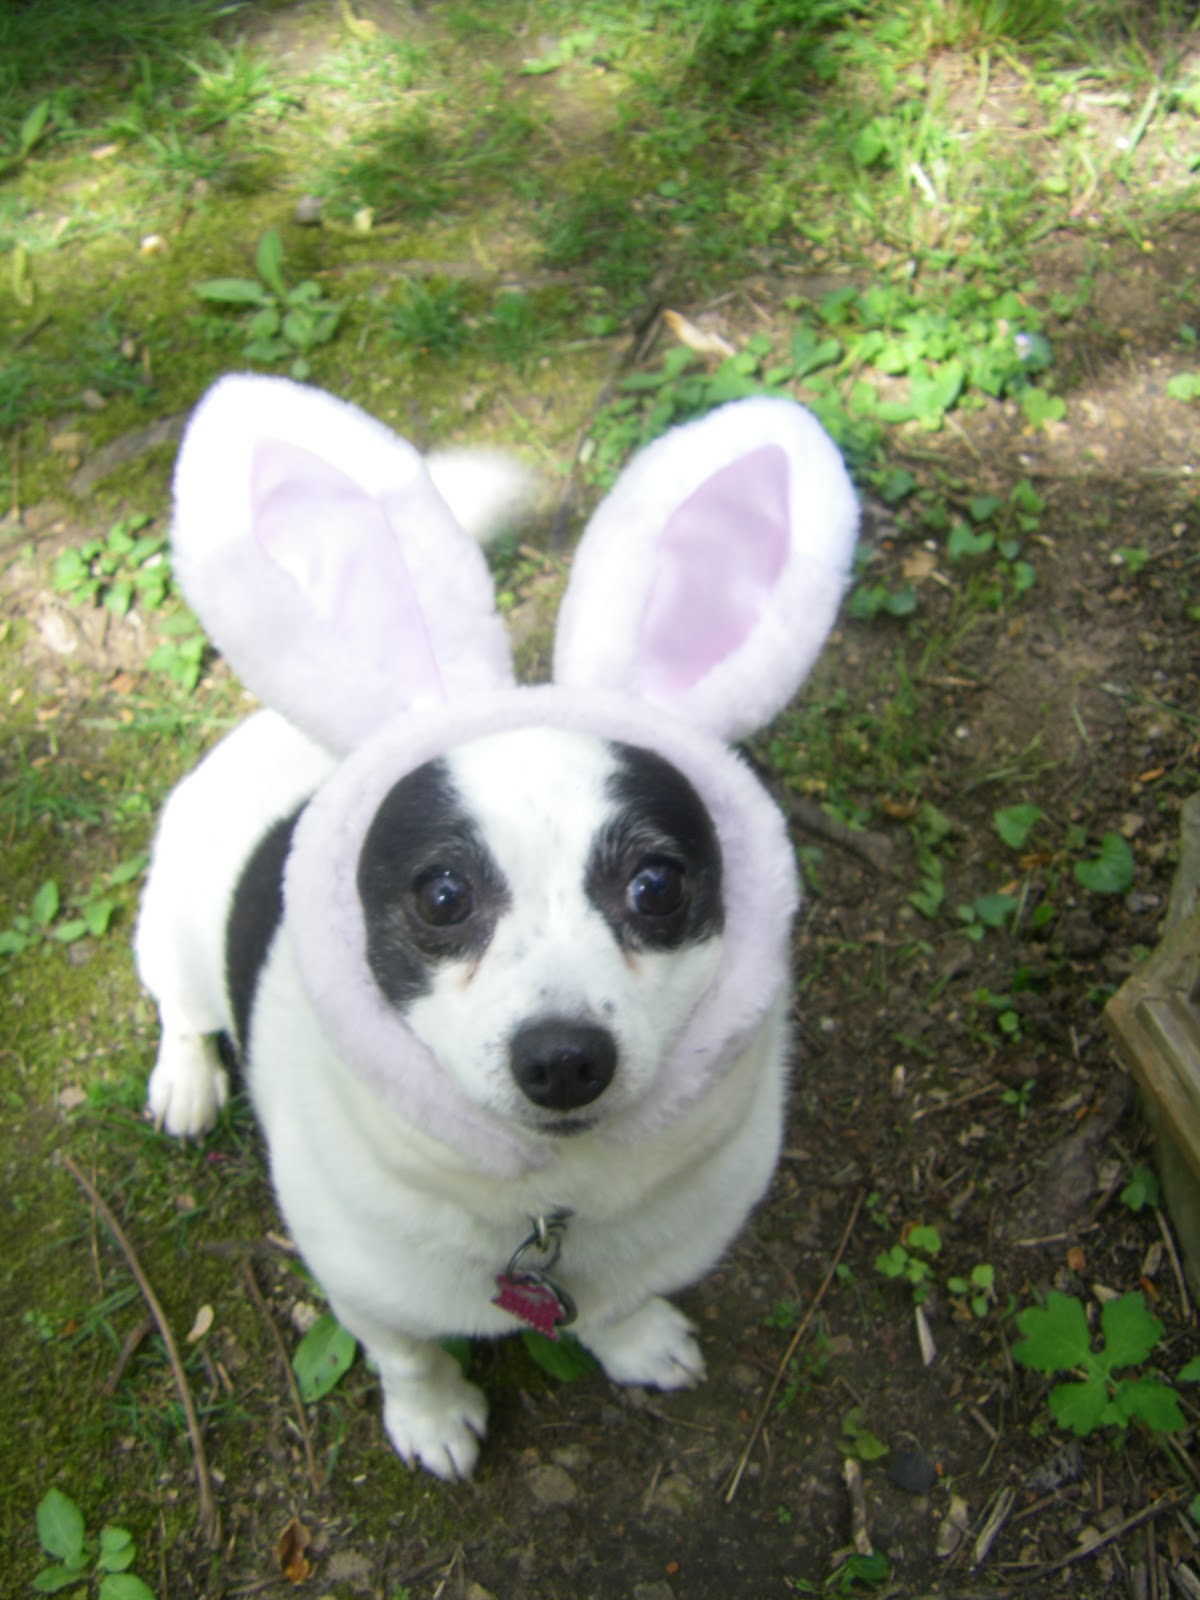 Dog And Human Mix Dogs in bunny ears would